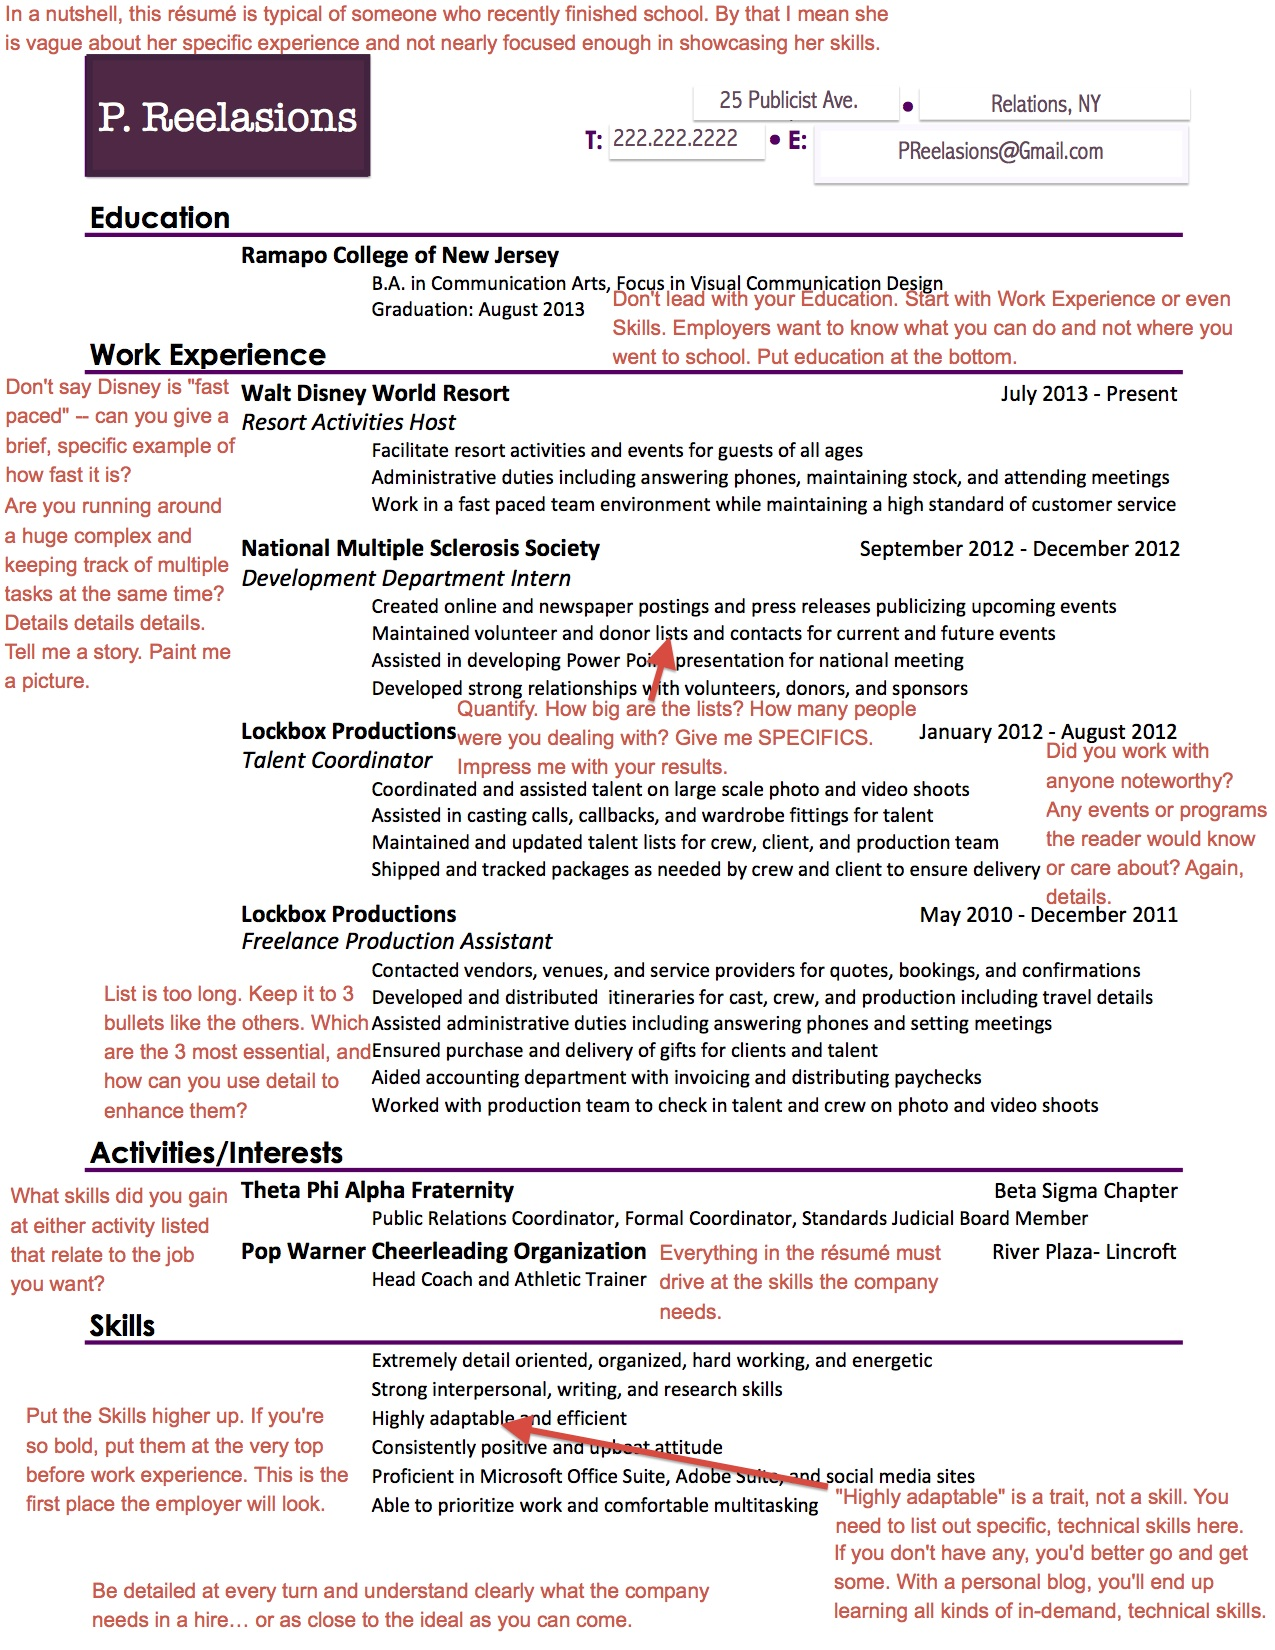 Resume Public Relations Resume Sample what employers are looking for on your pr aftercollege p reelasions resume jpeg